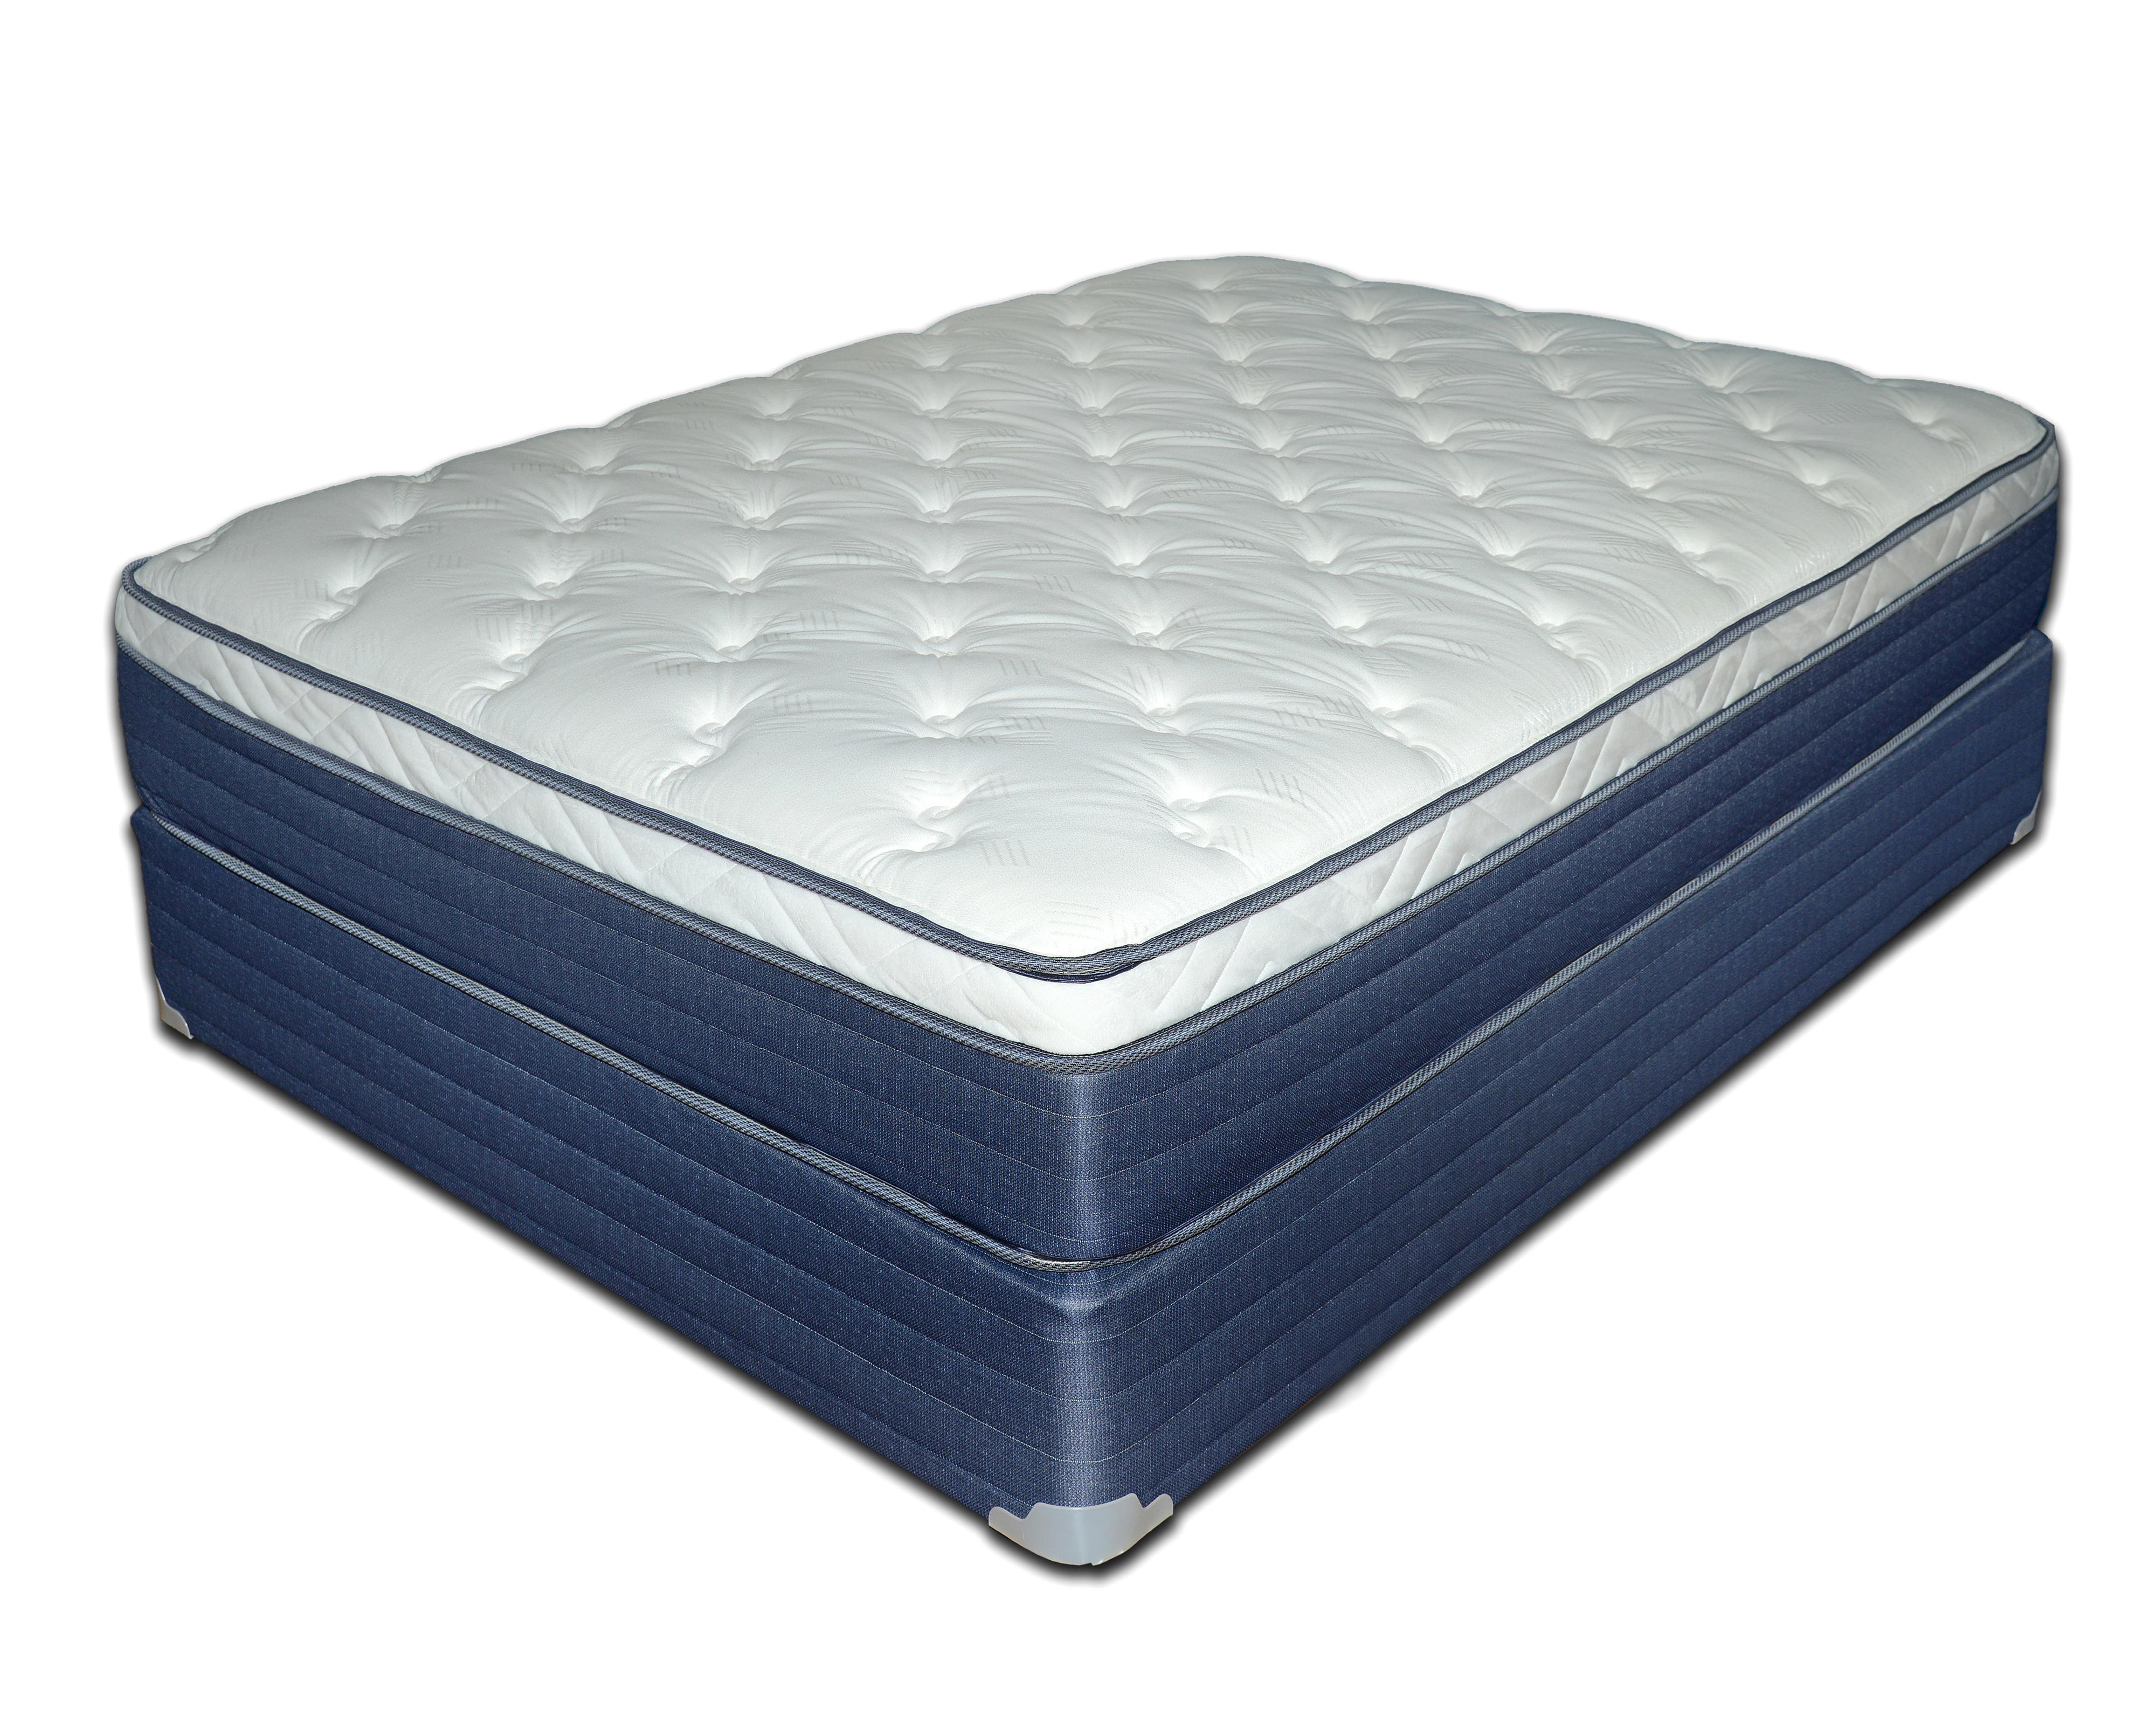 "Queen 12 1/2"" Euro Top Mattress Set"